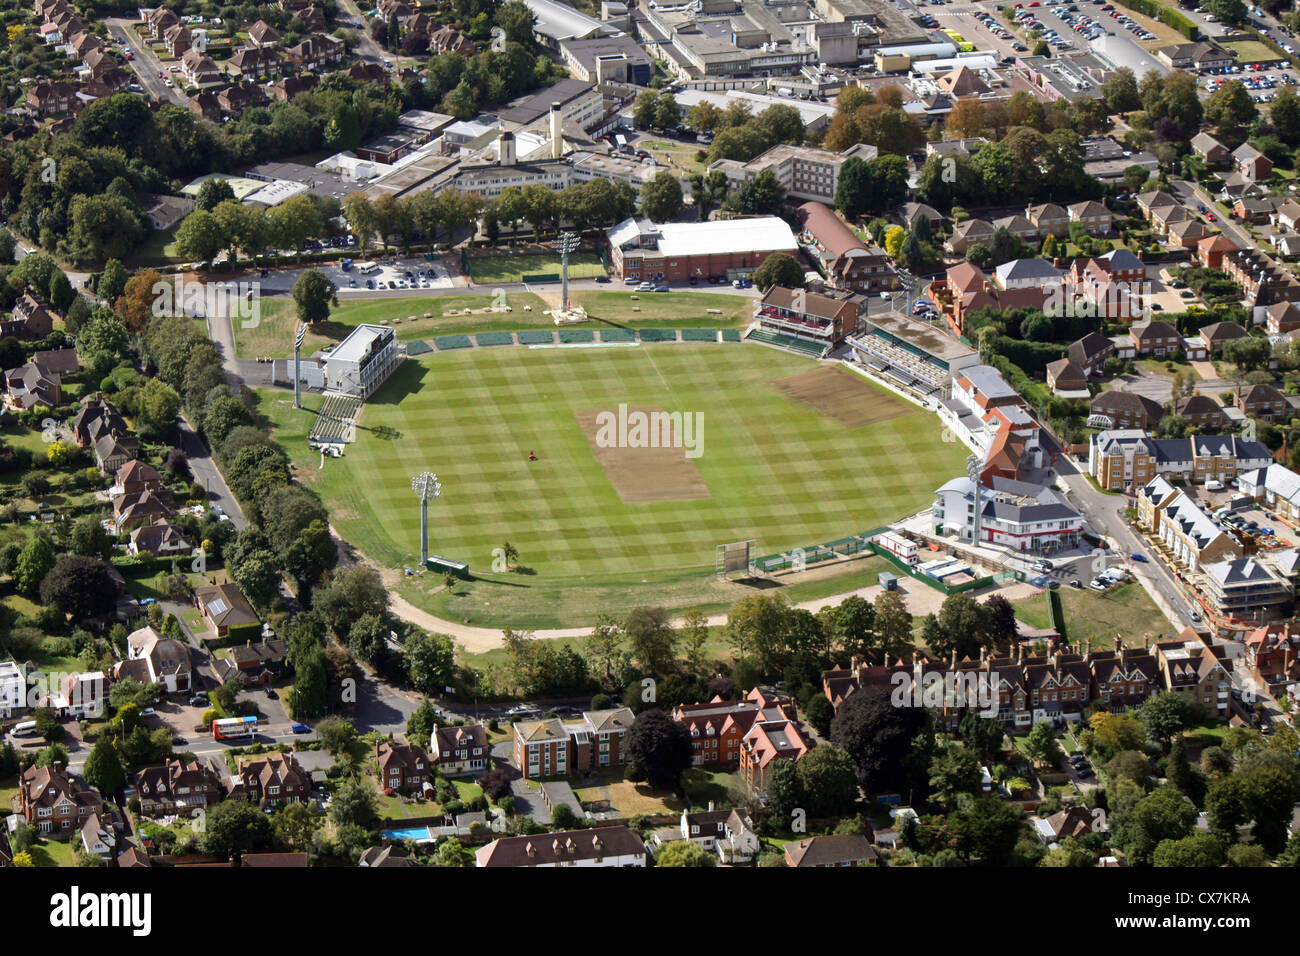 aerial view of The St Lawrence Ground home of Kent County Cricket Club in Canterbury - Stock Image